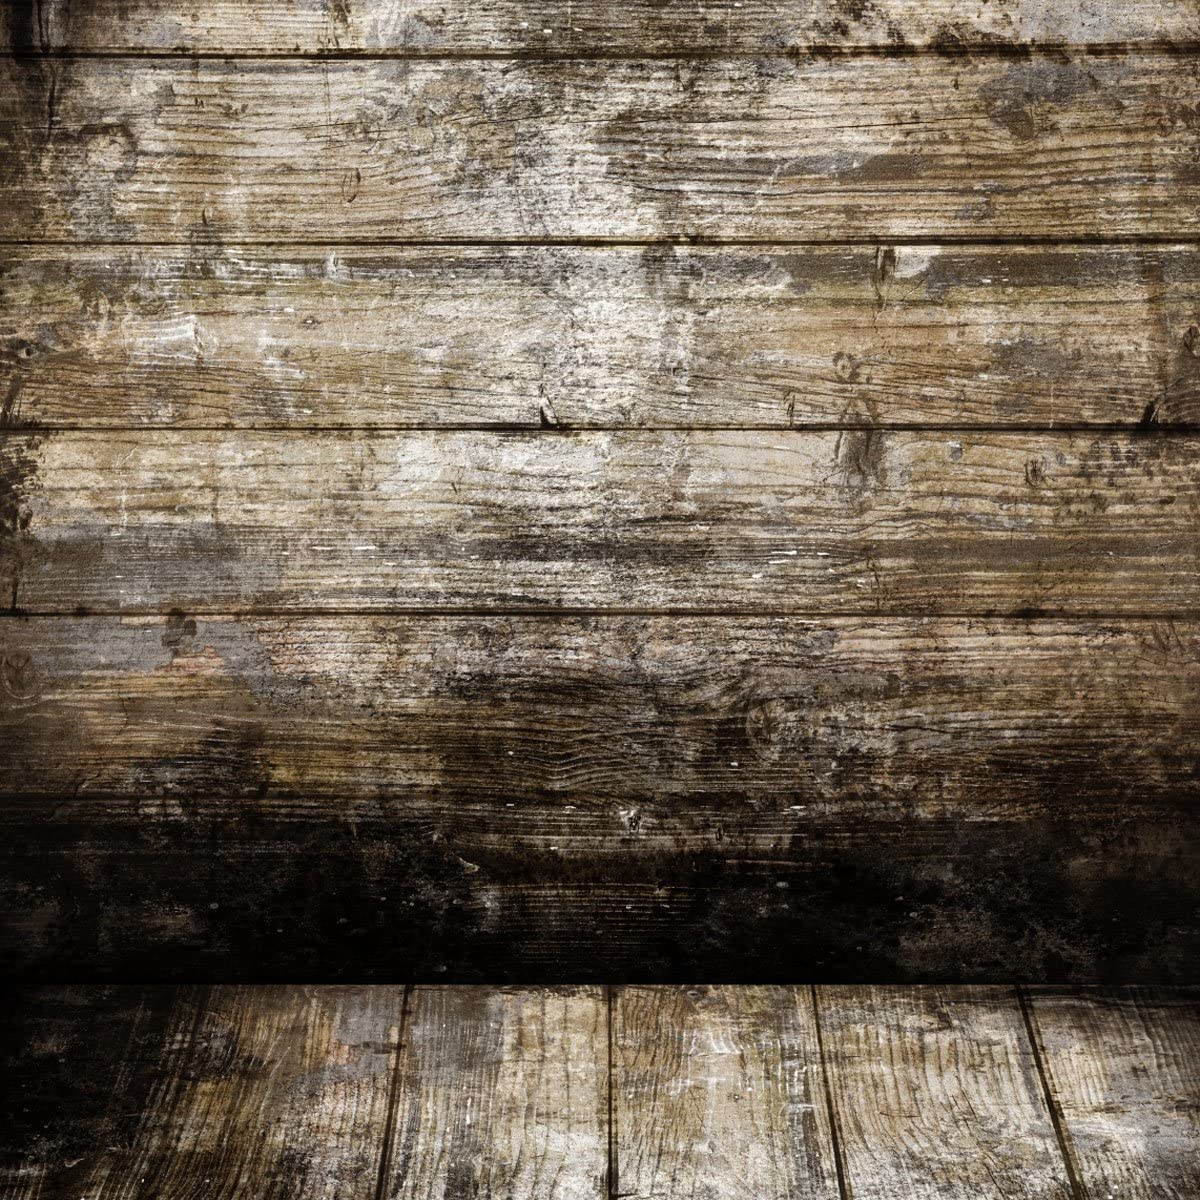 5x7ft Vinyl Backdrop Photography Background,Blurry Smooth Brown Color Brick Wall Wood Stripes Floor Scene Children Kids Adults Baby Photo Portraits Background for 1.5x2.2M Photo Studio Props